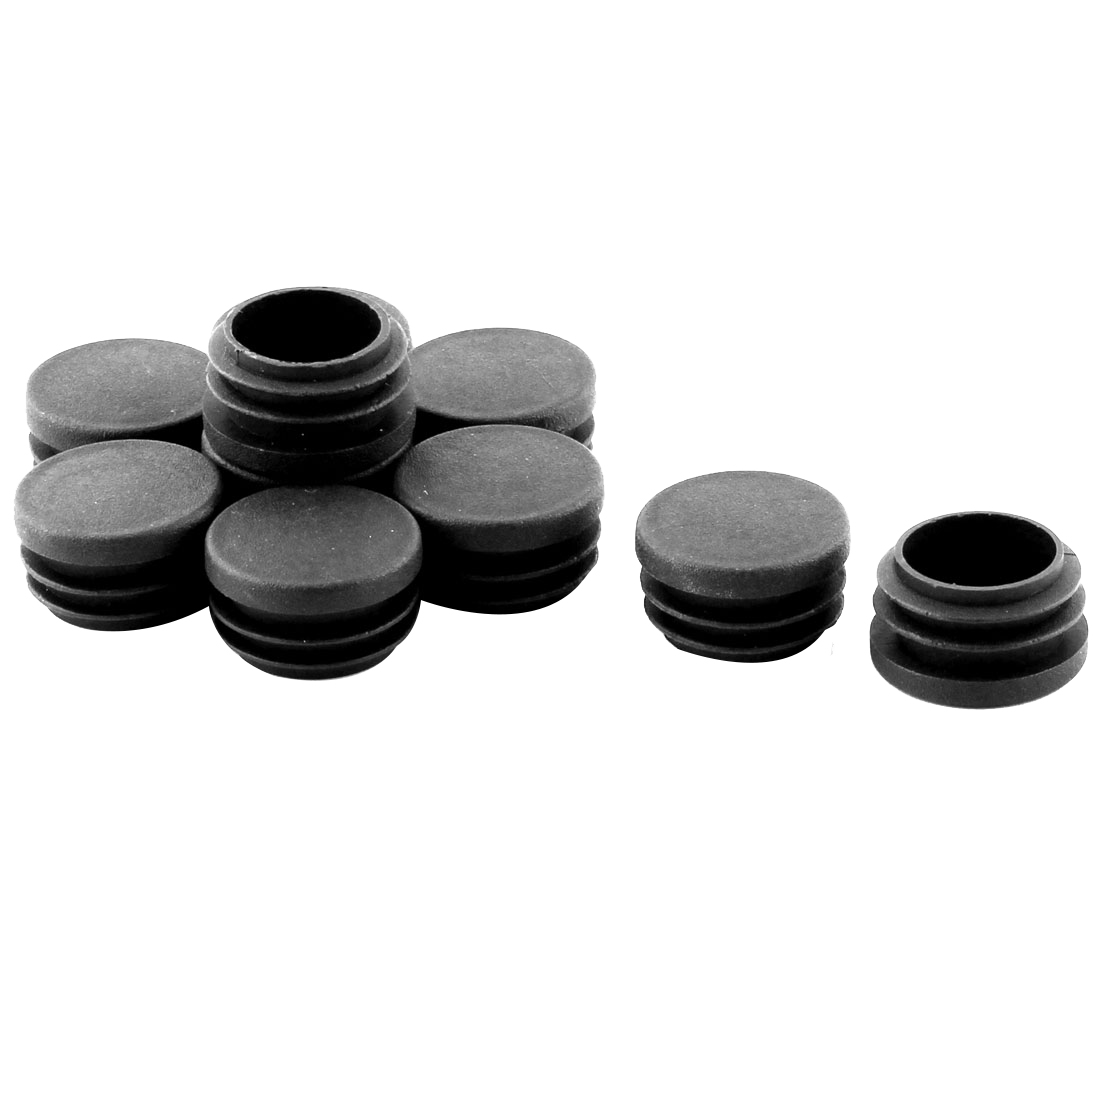 Furniture Legs Plastic Round Shaped Tube Pipe Inserts Protector 10 PCS